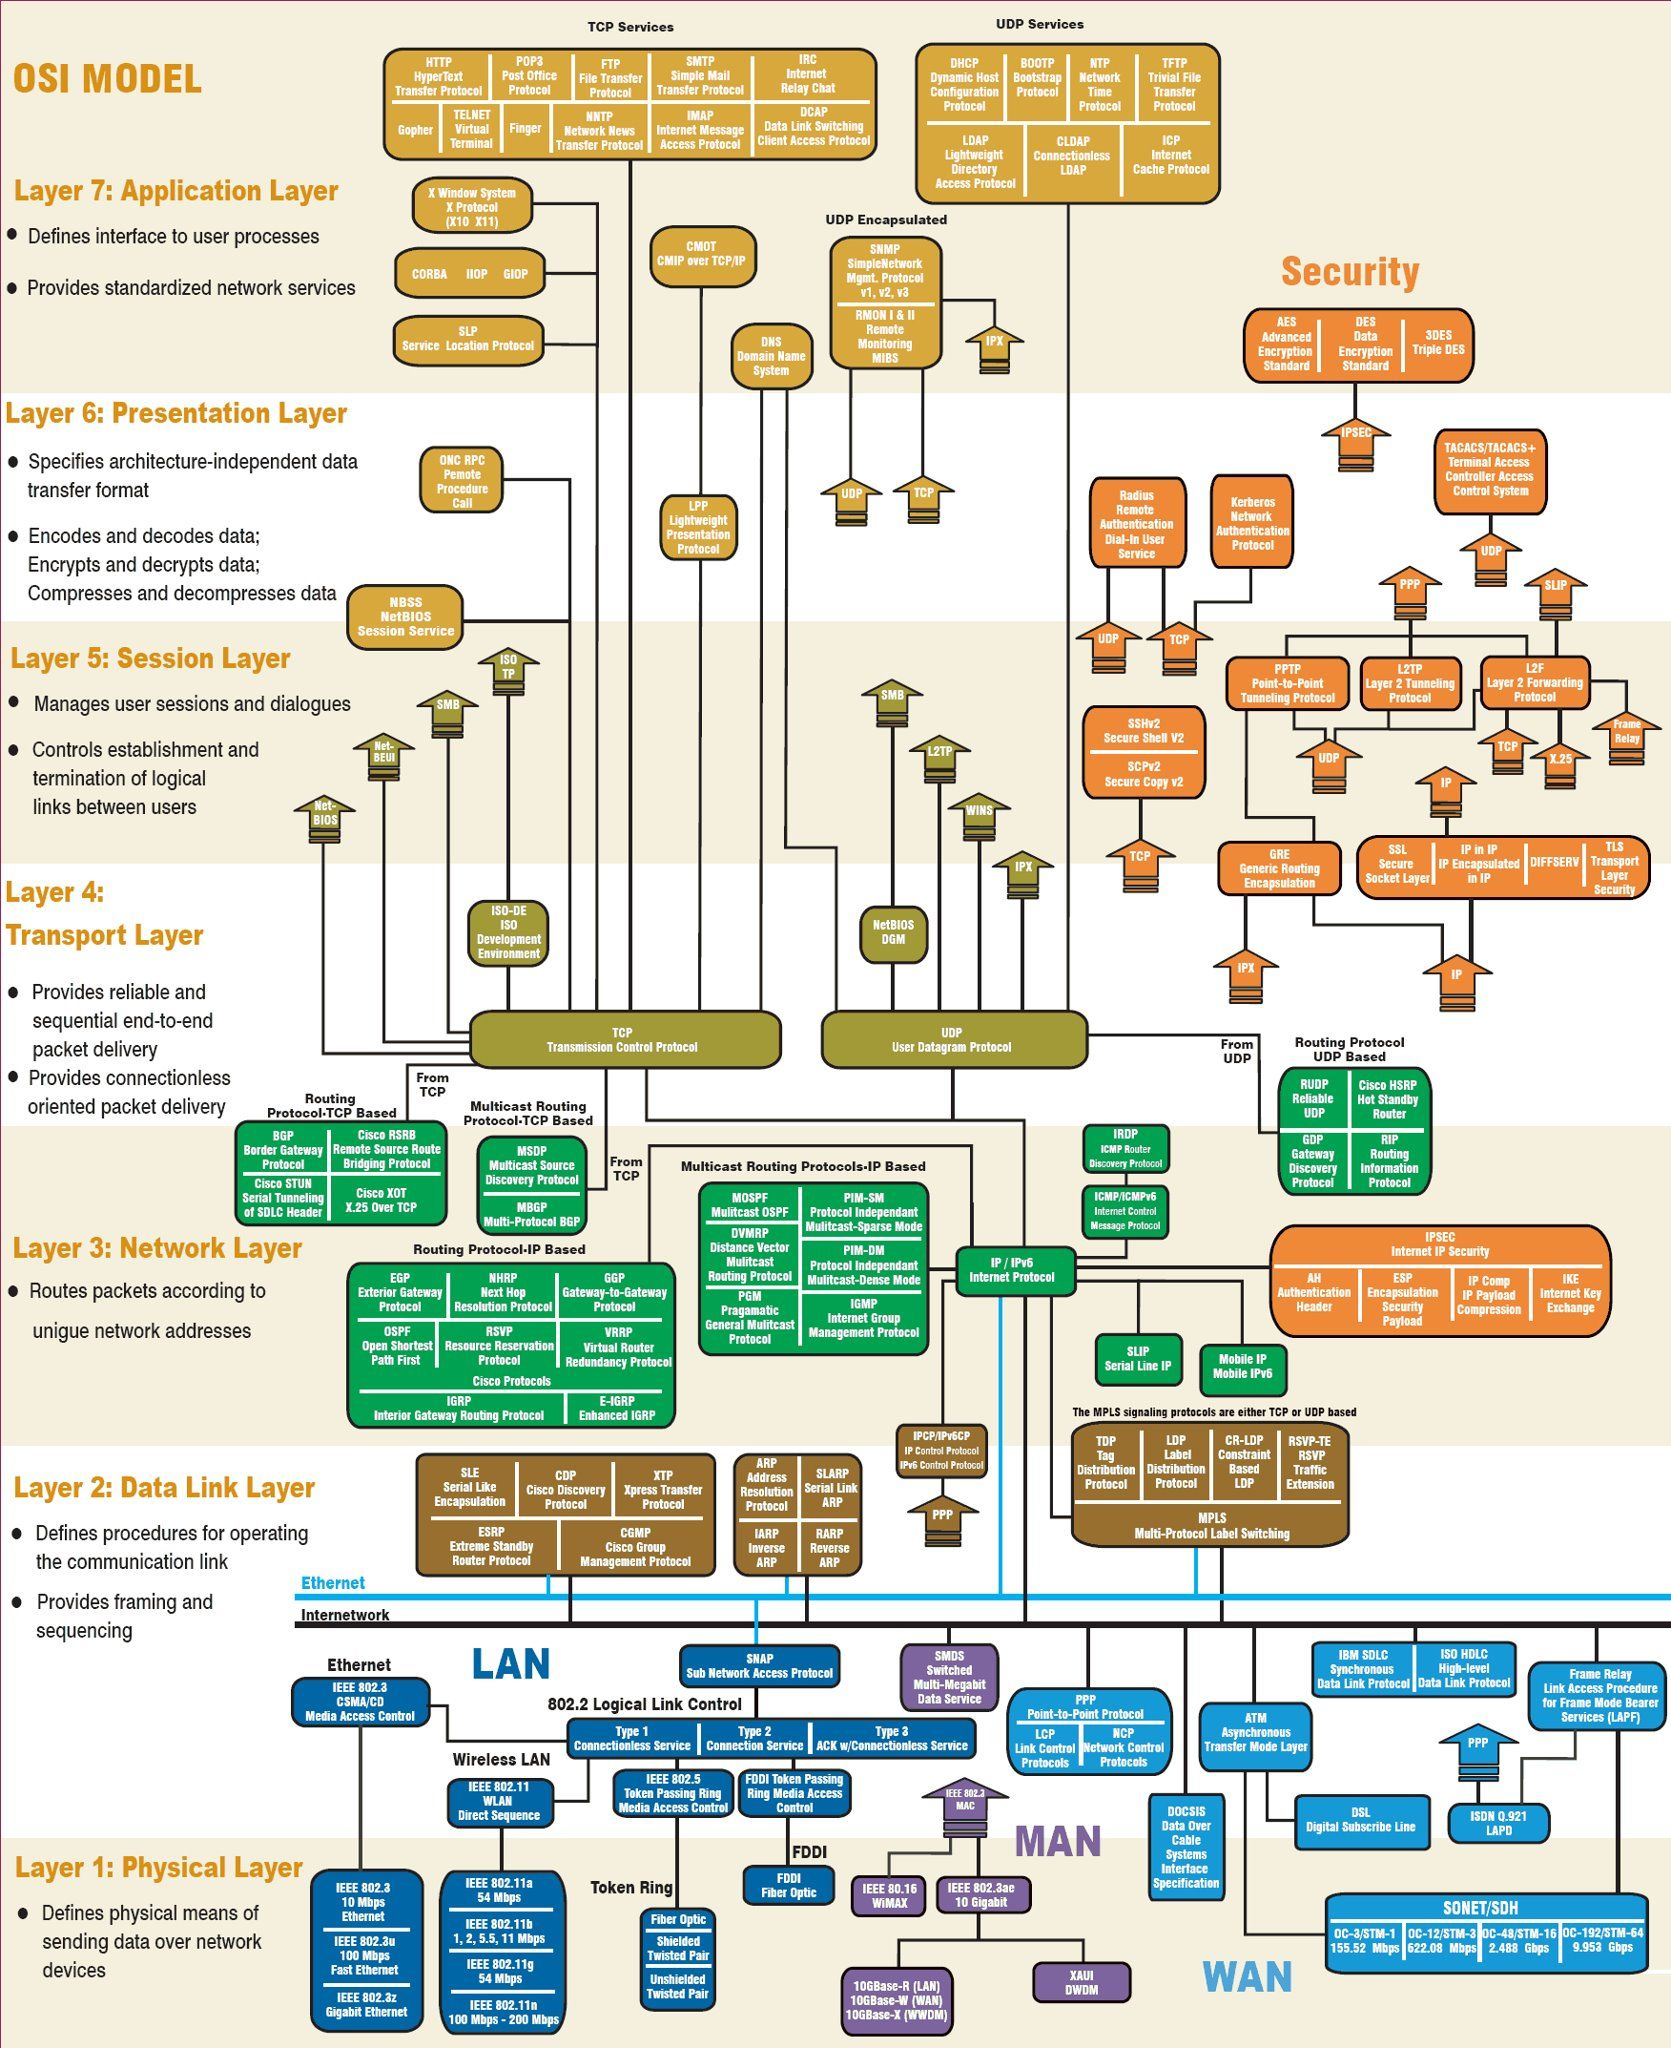 169 best Enterprise Architecture images on Pinterest | Enterprise ...